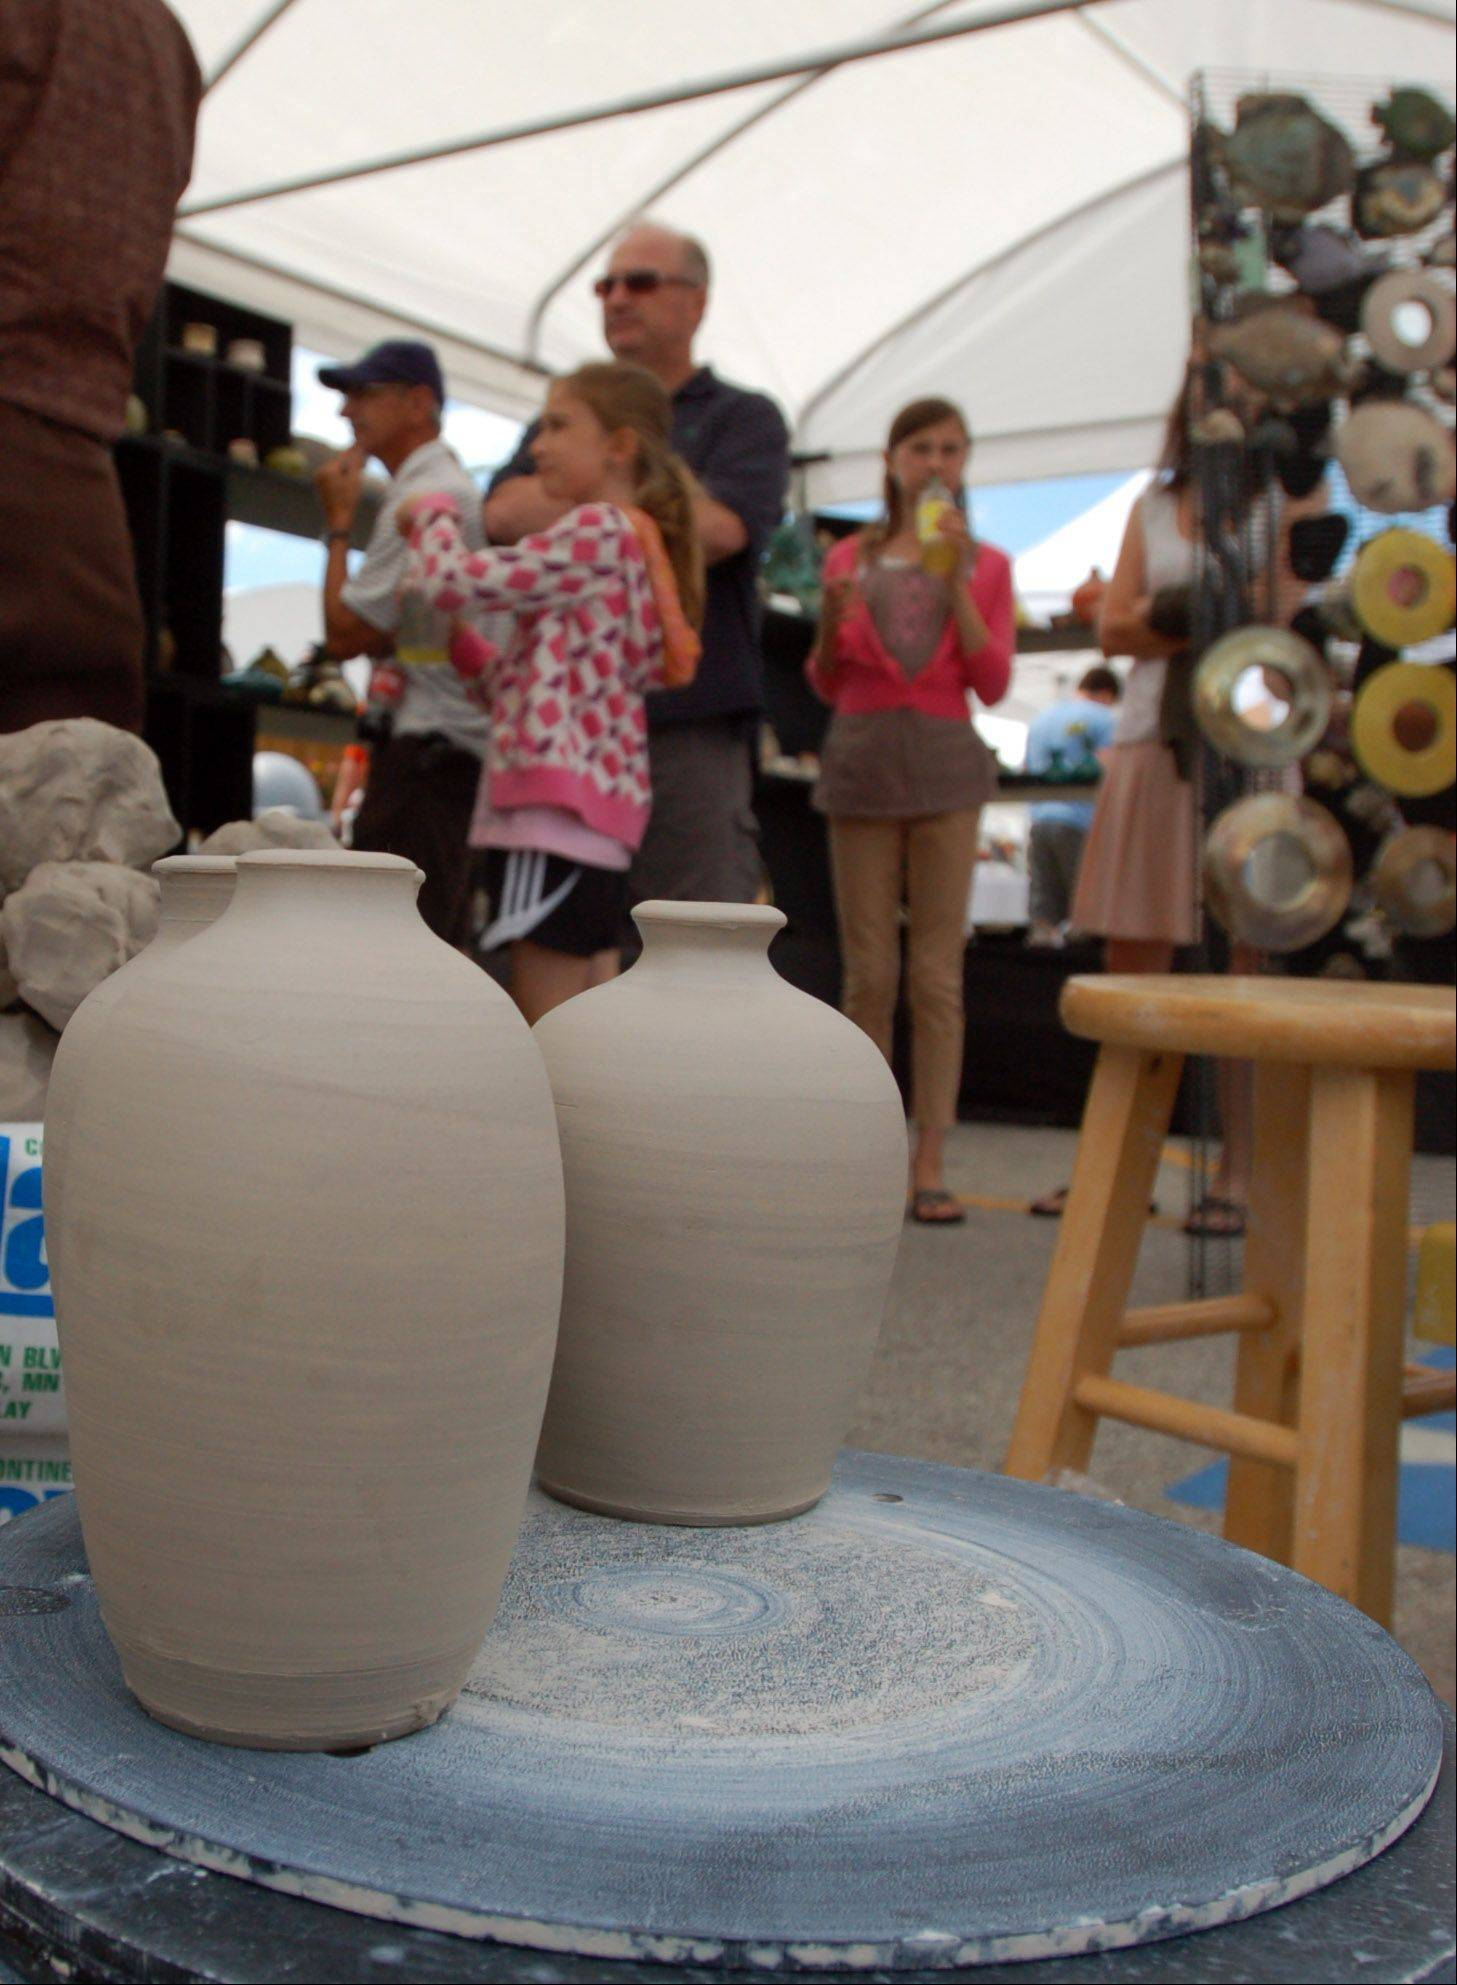 Raku Gold Pottery was a popular booth to visit Sunday during the 7th annual Art in Your Eye fine art show in Batavia. The artists of Raku Gold, Shawn and Jim Barbagallo of Rockford, displayed several ceramic pieces, created using the Japanese technique called Raku.